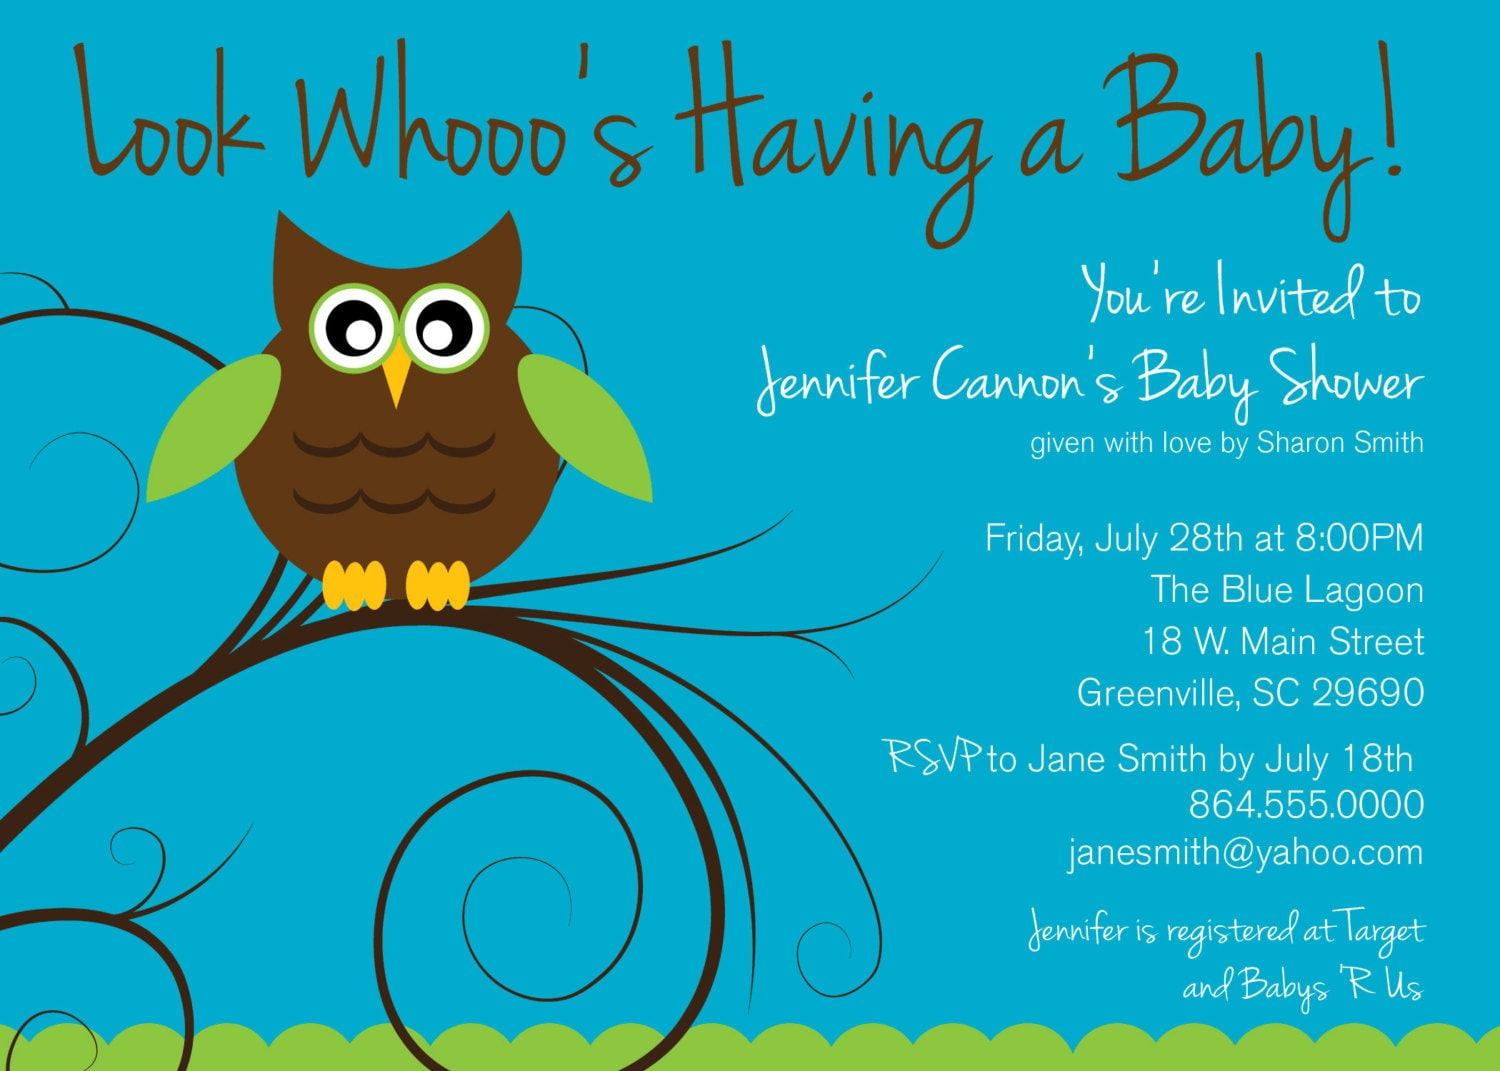 Gender Neutral Baby Shower Invitations is beautiful invitations example